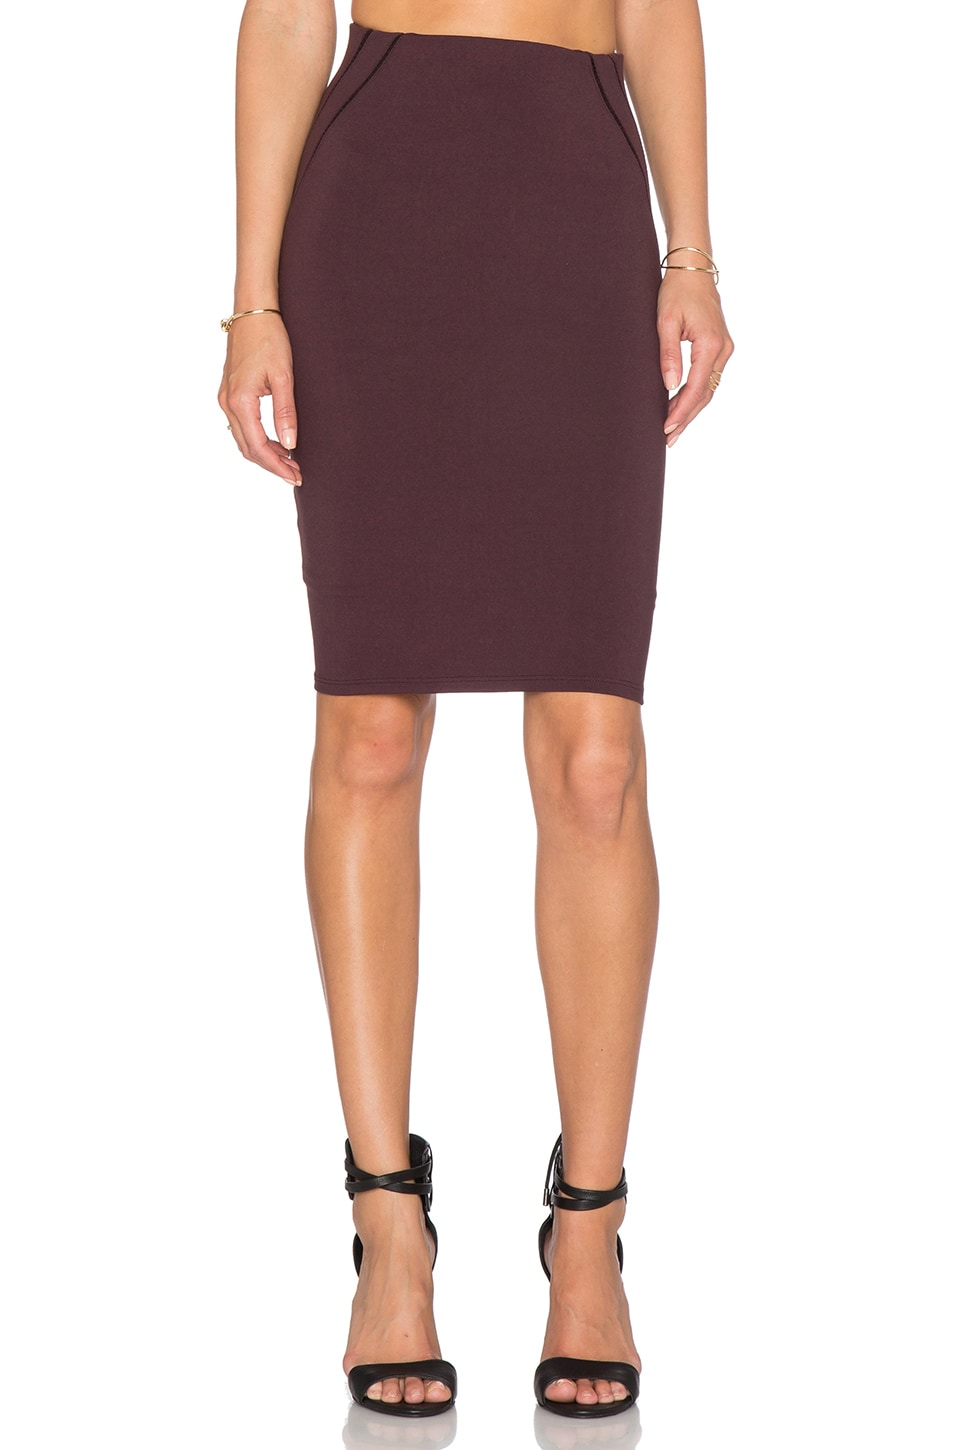 Stitched Detail Pencil Skirt